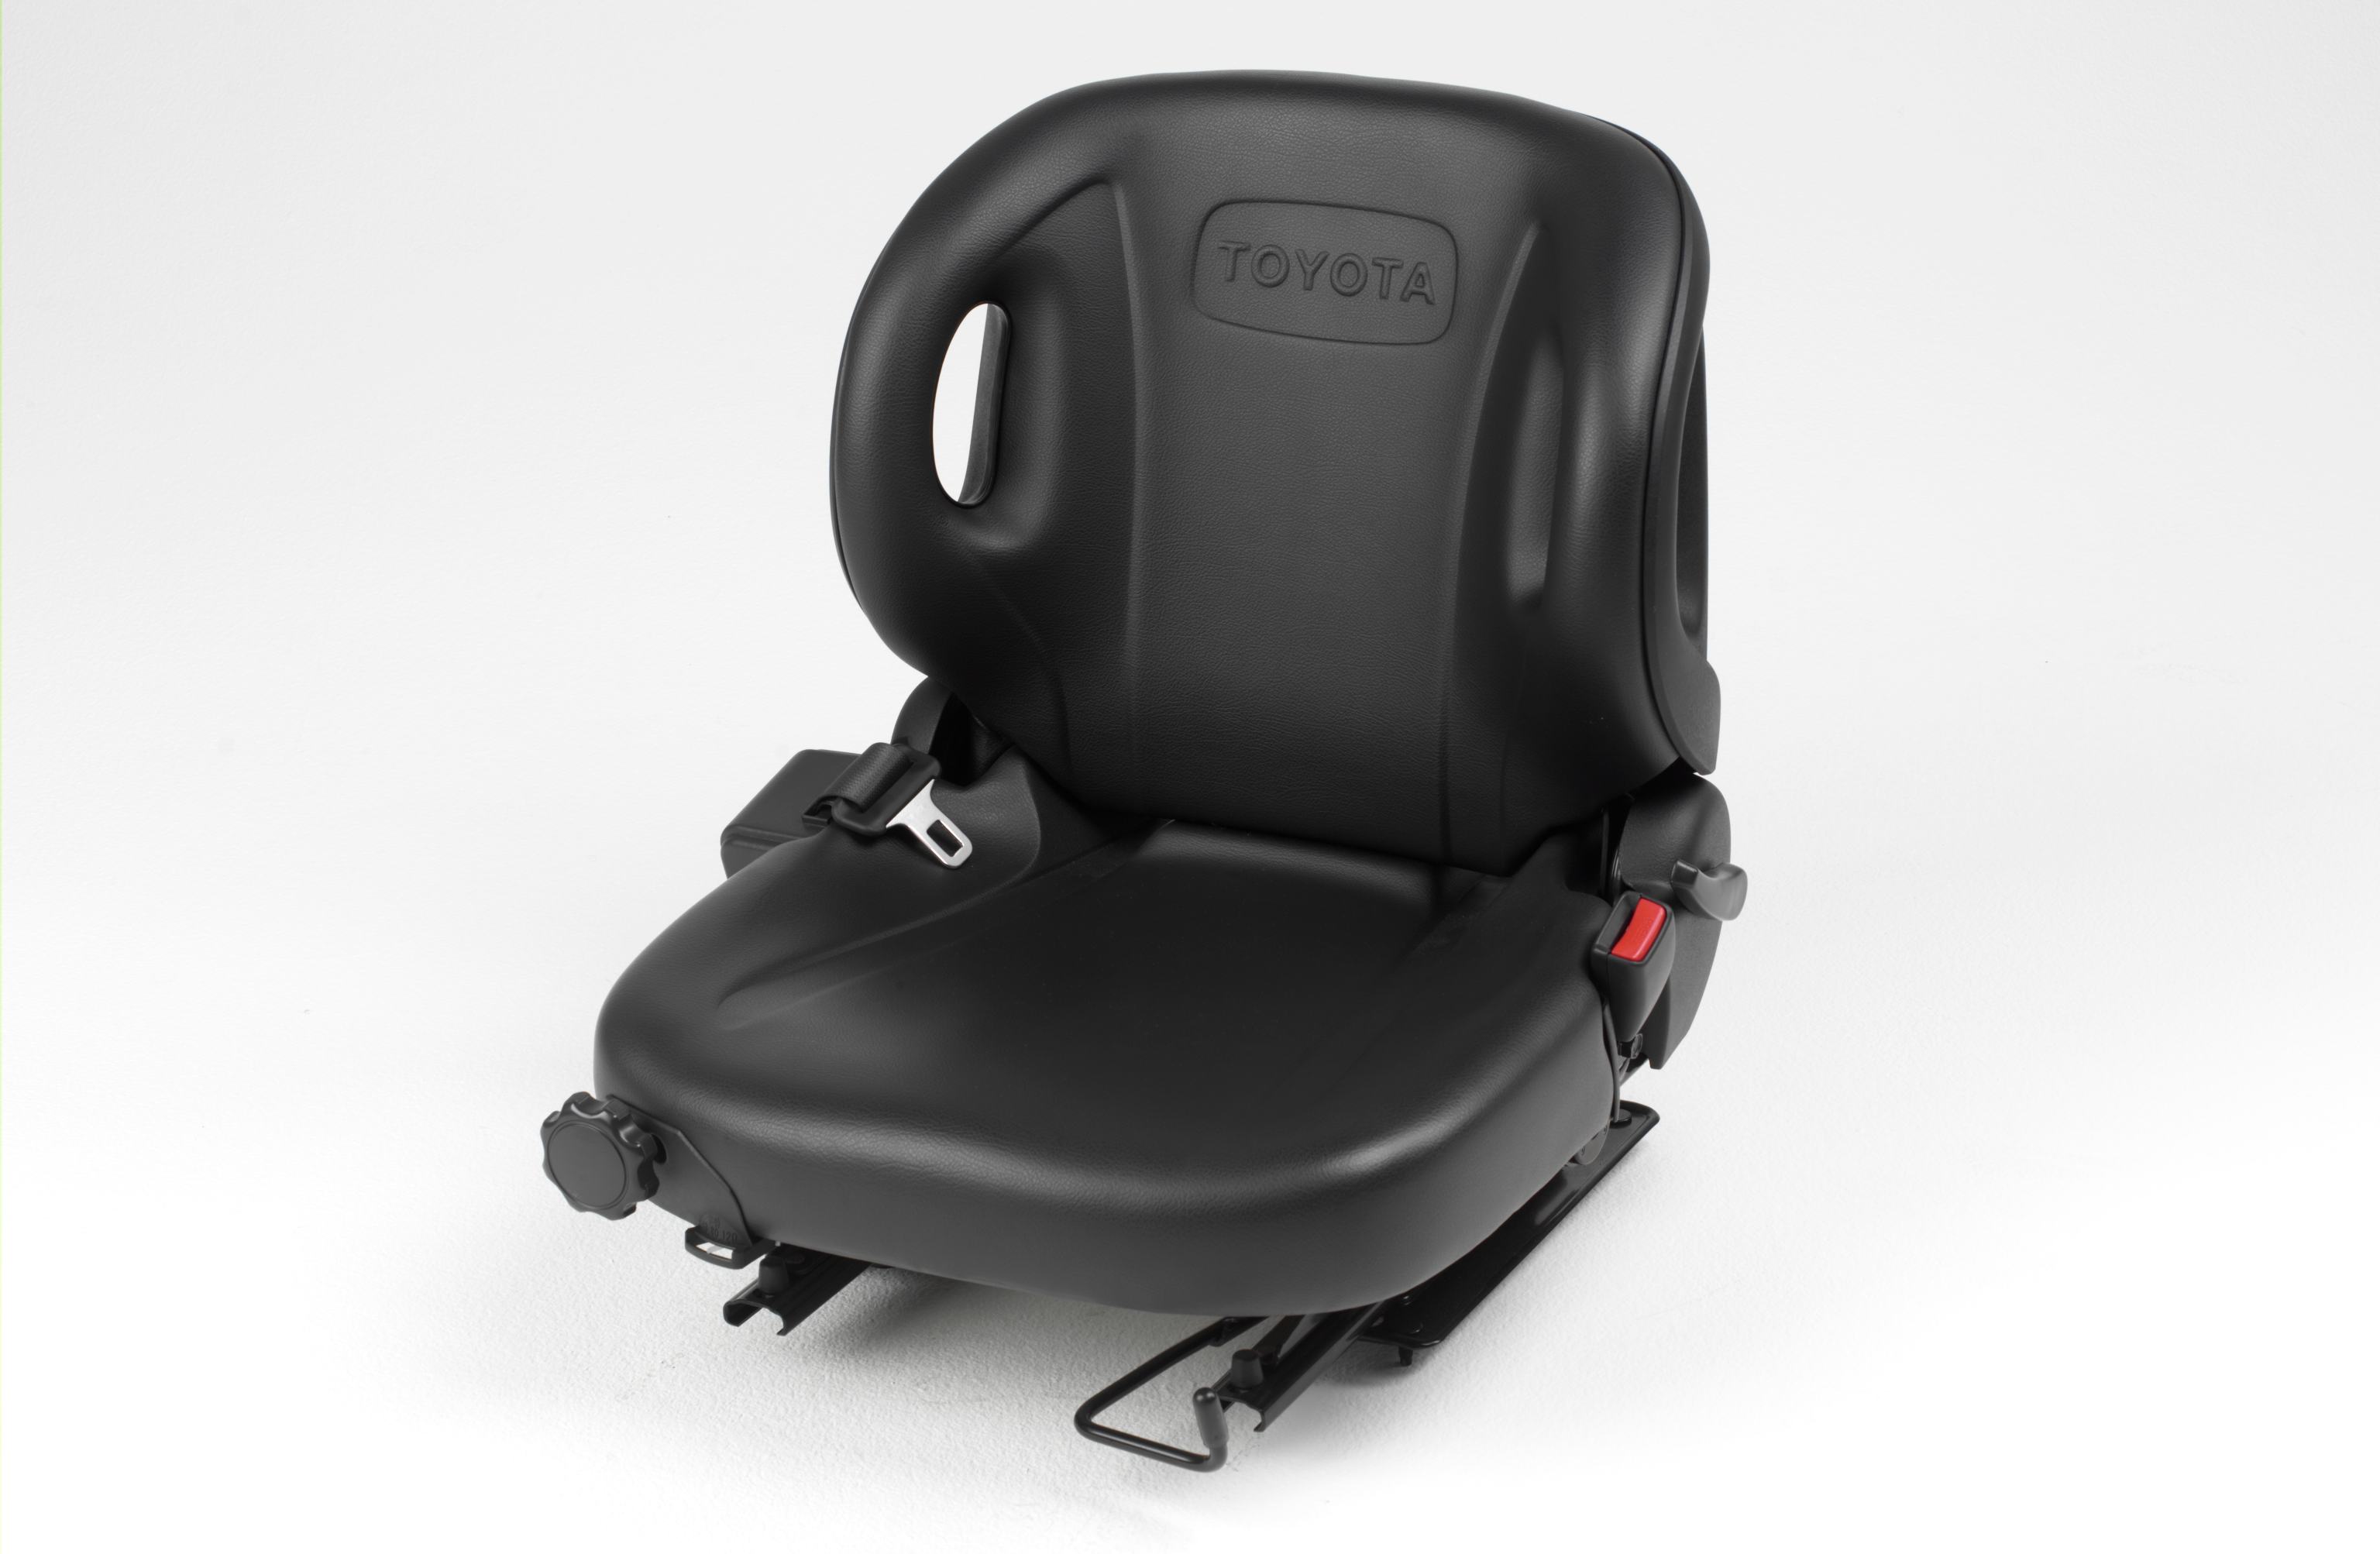 Close up photo of forklift chair for Toyota's electric pneumatic model.